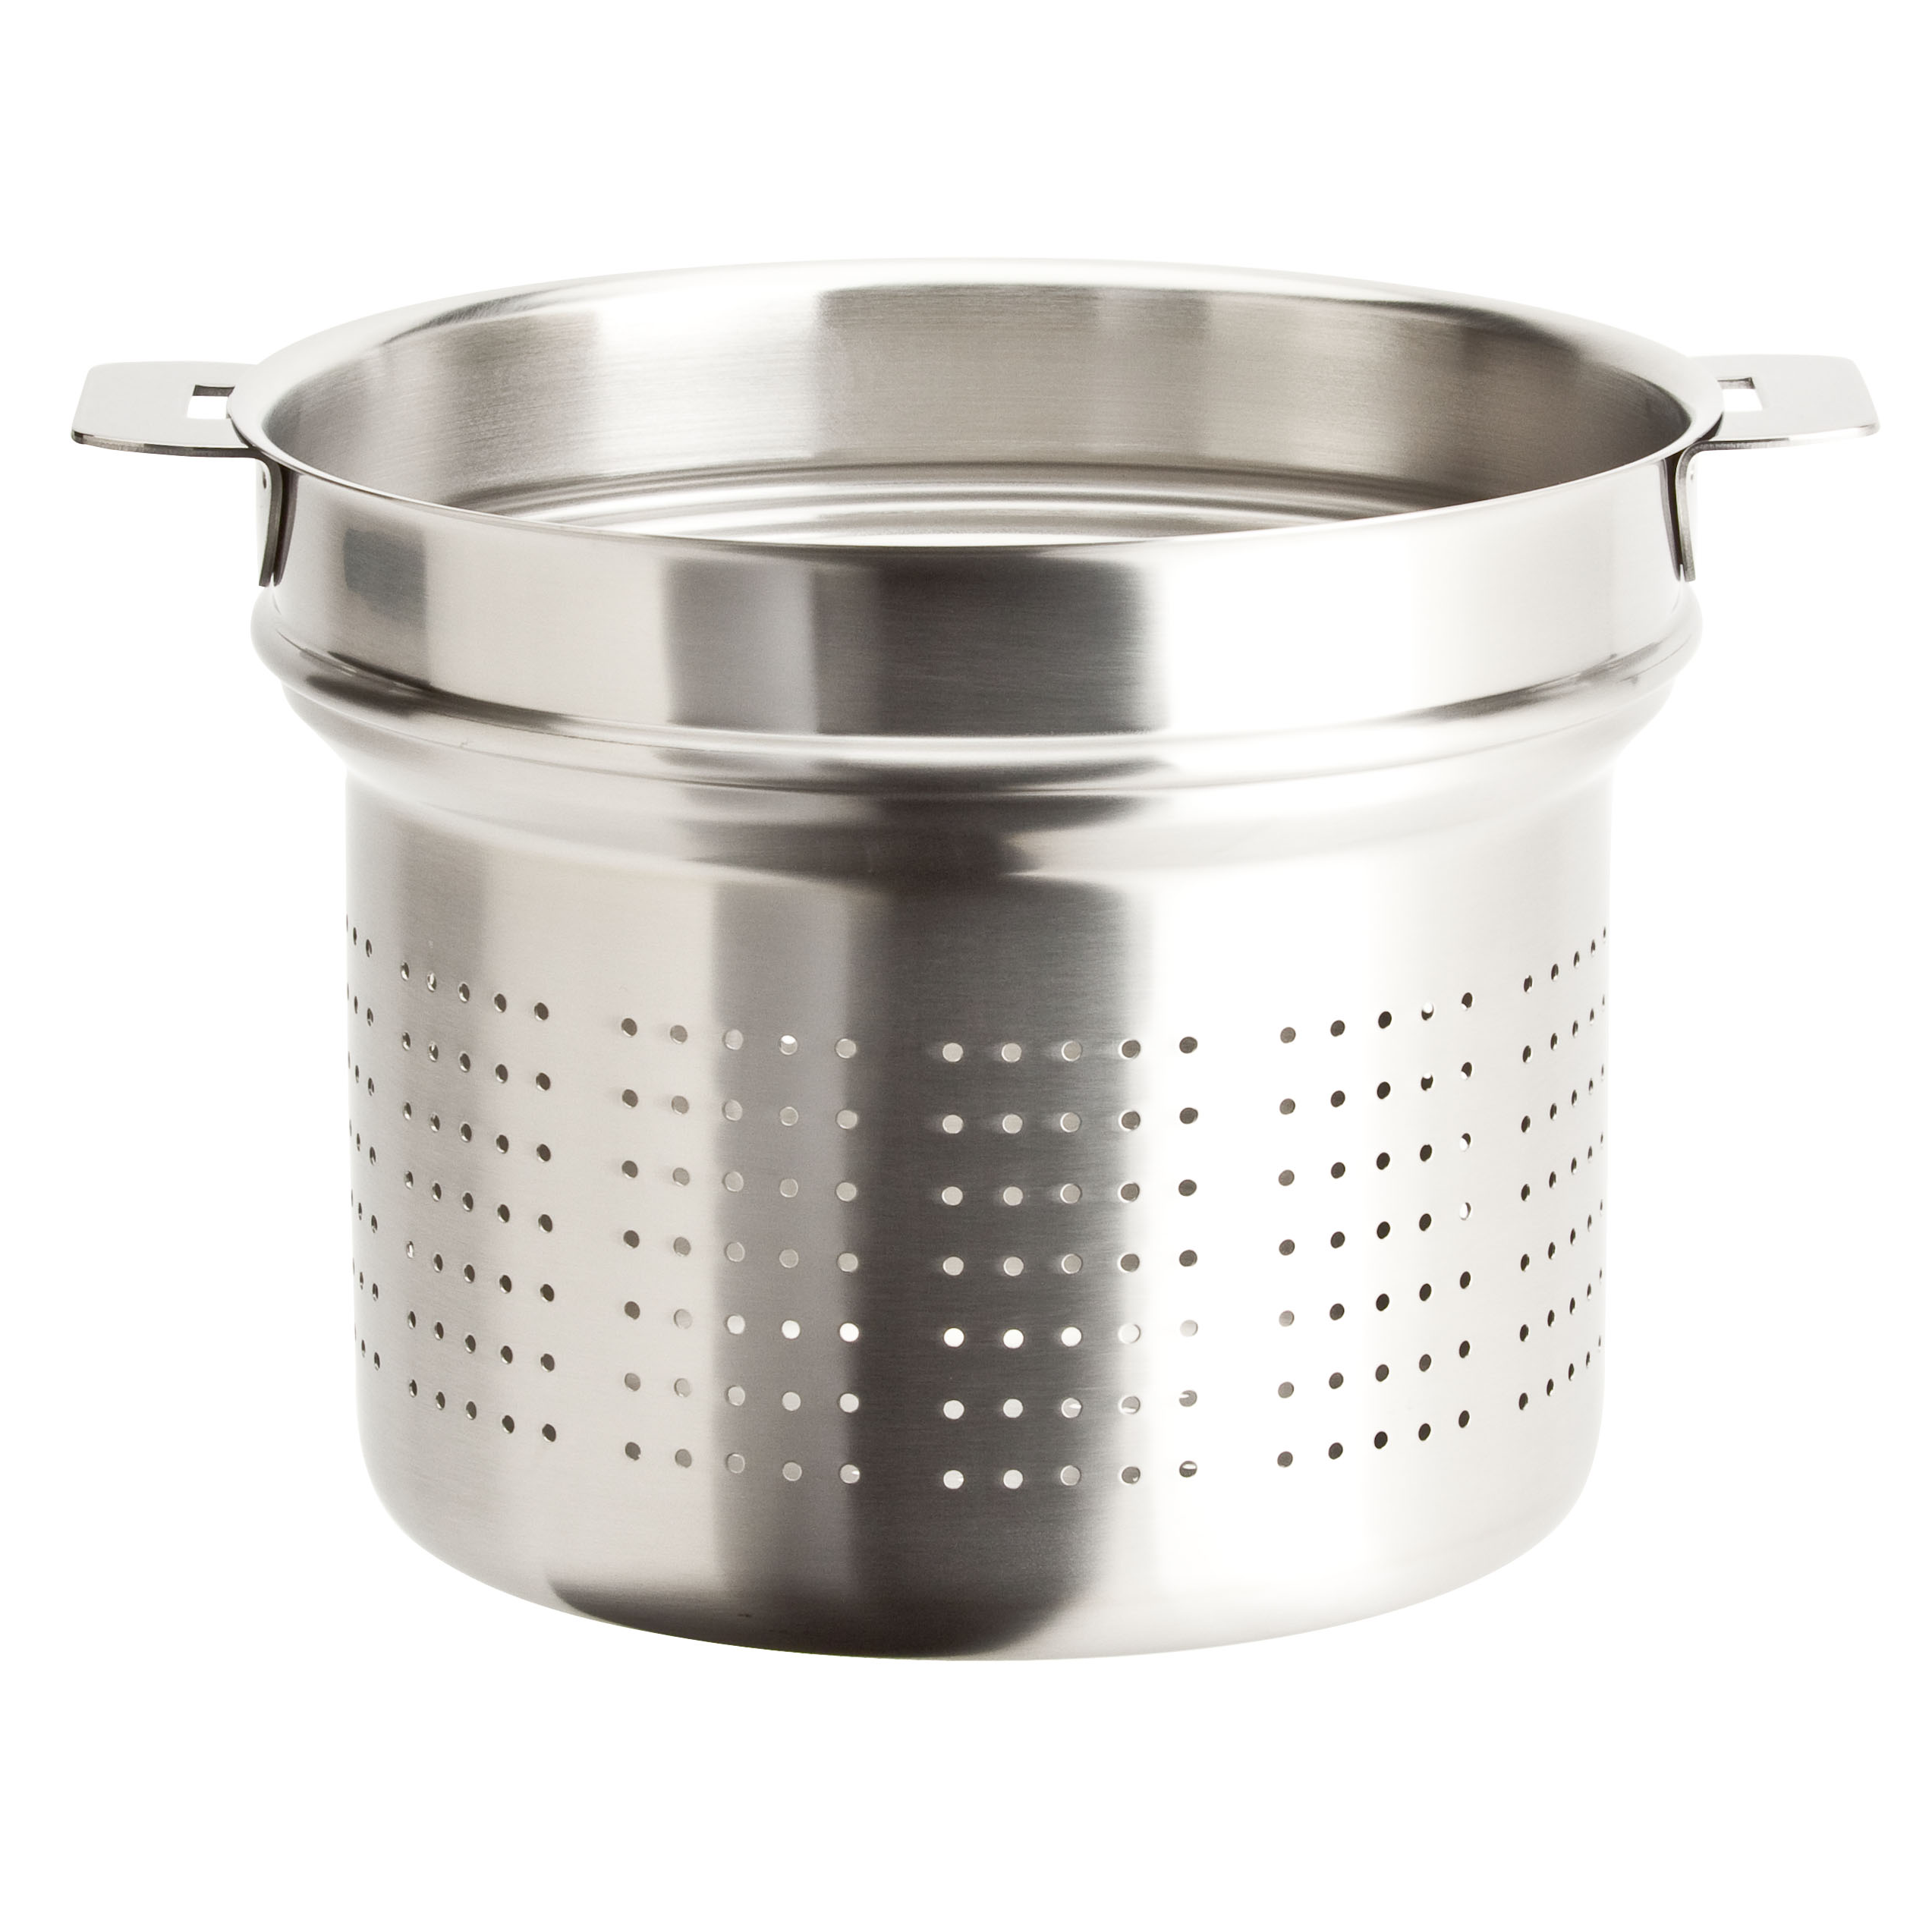 Best Price Anolon Classic Stainless Steel Universal Covered Steamer Insert